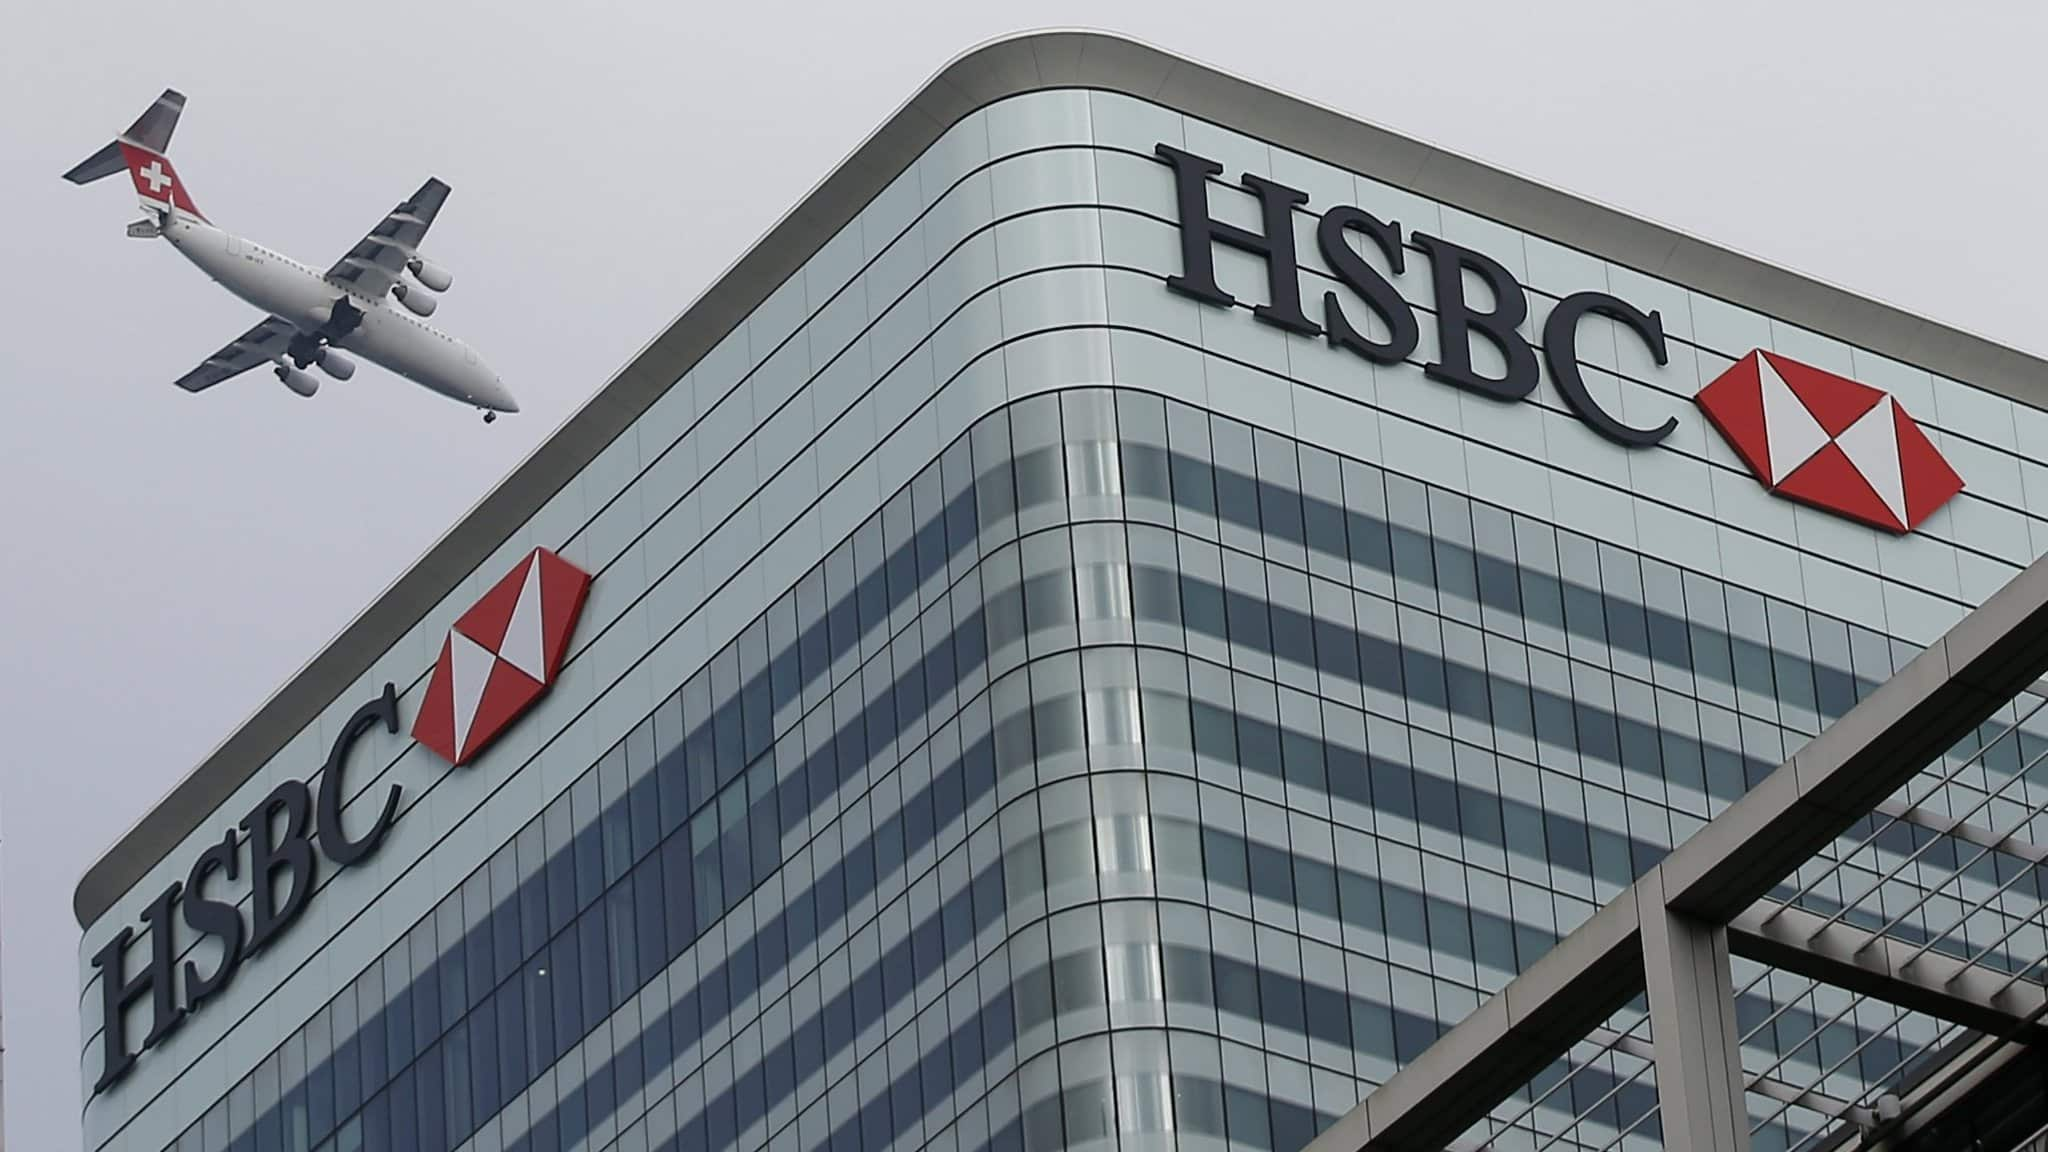 Bitfinex - Major Crypto Exchange Acquires Banking Service of HSBC